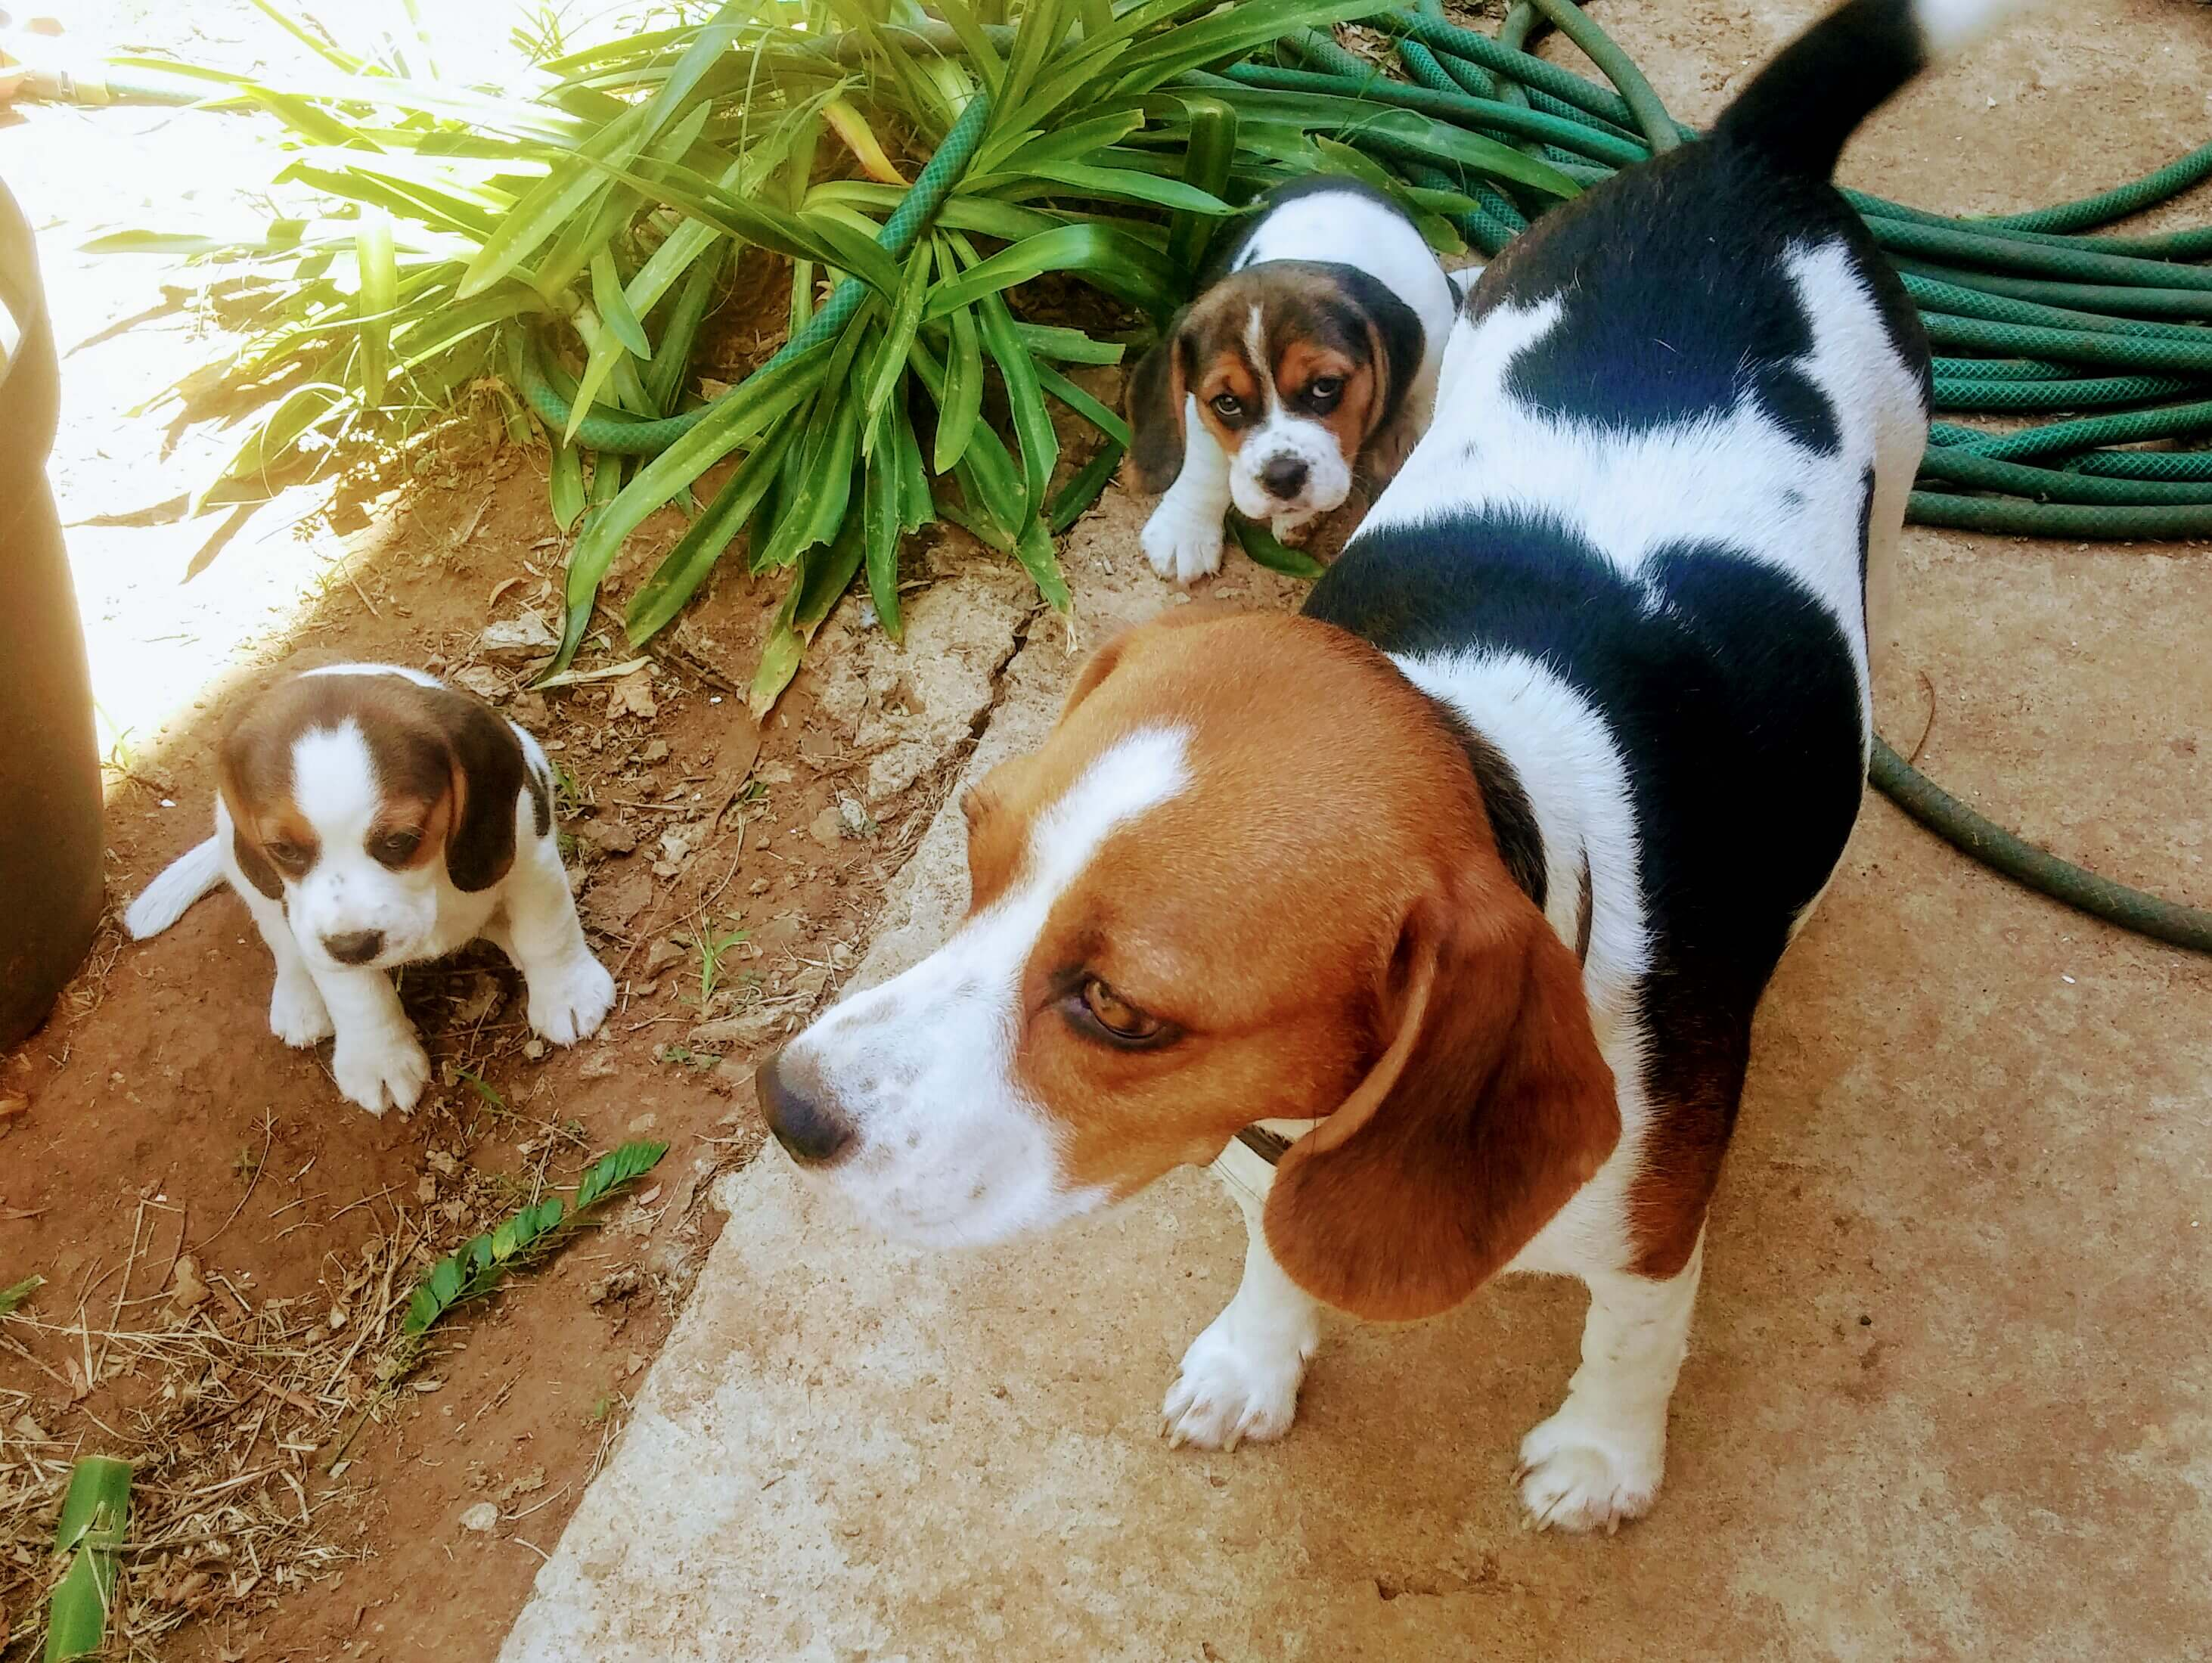 Beagle Puppies for Sale in Johannesburg by Daniel van Greunen